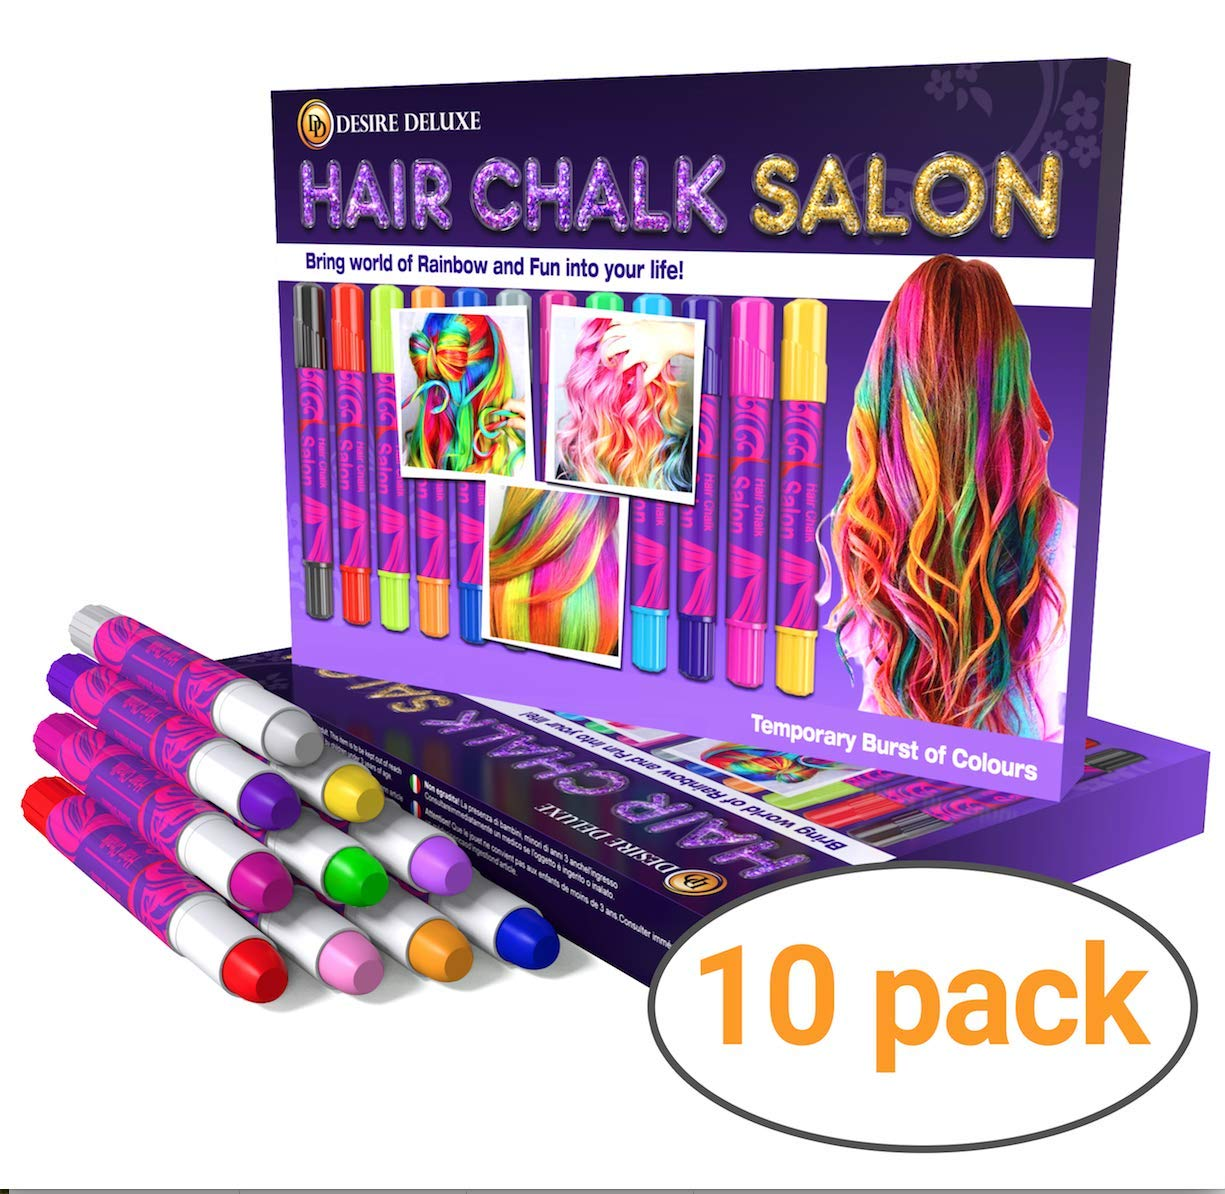 Christmas Gifts For Girls Age 11.Desire Deluxe Hair Chalk For Girls Makeup Kit Of 10 Temporary Colour Pens Gifts Great Toy For Kids Age 5 6 7 8 9 10 11 12 13 Years Old